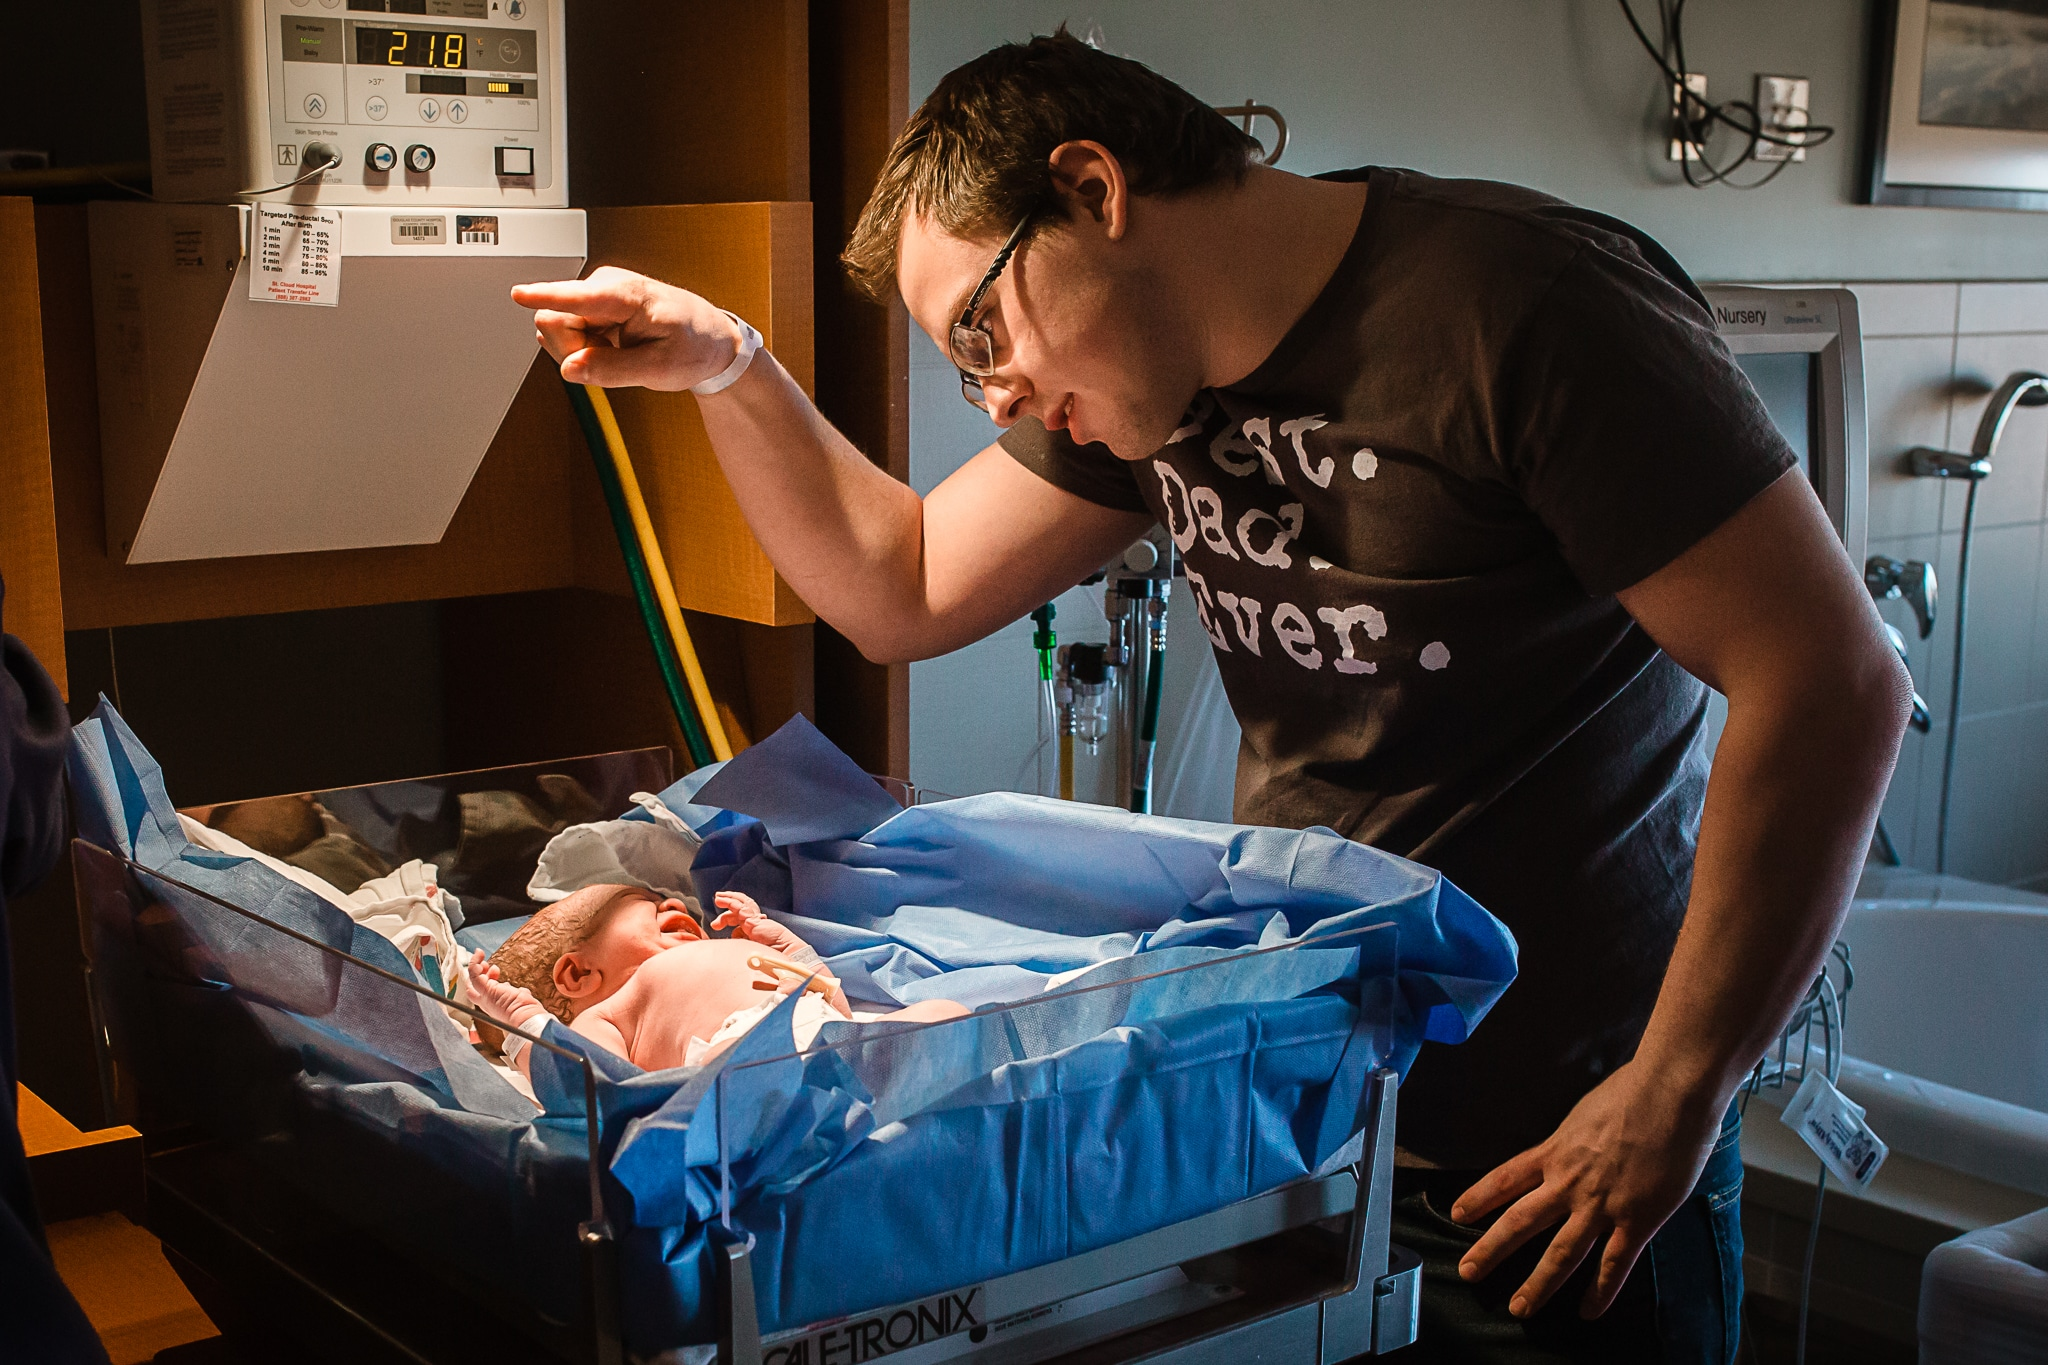 dad of newborn baby is blocking the light from the warmer so it does not shine in baby's eyes